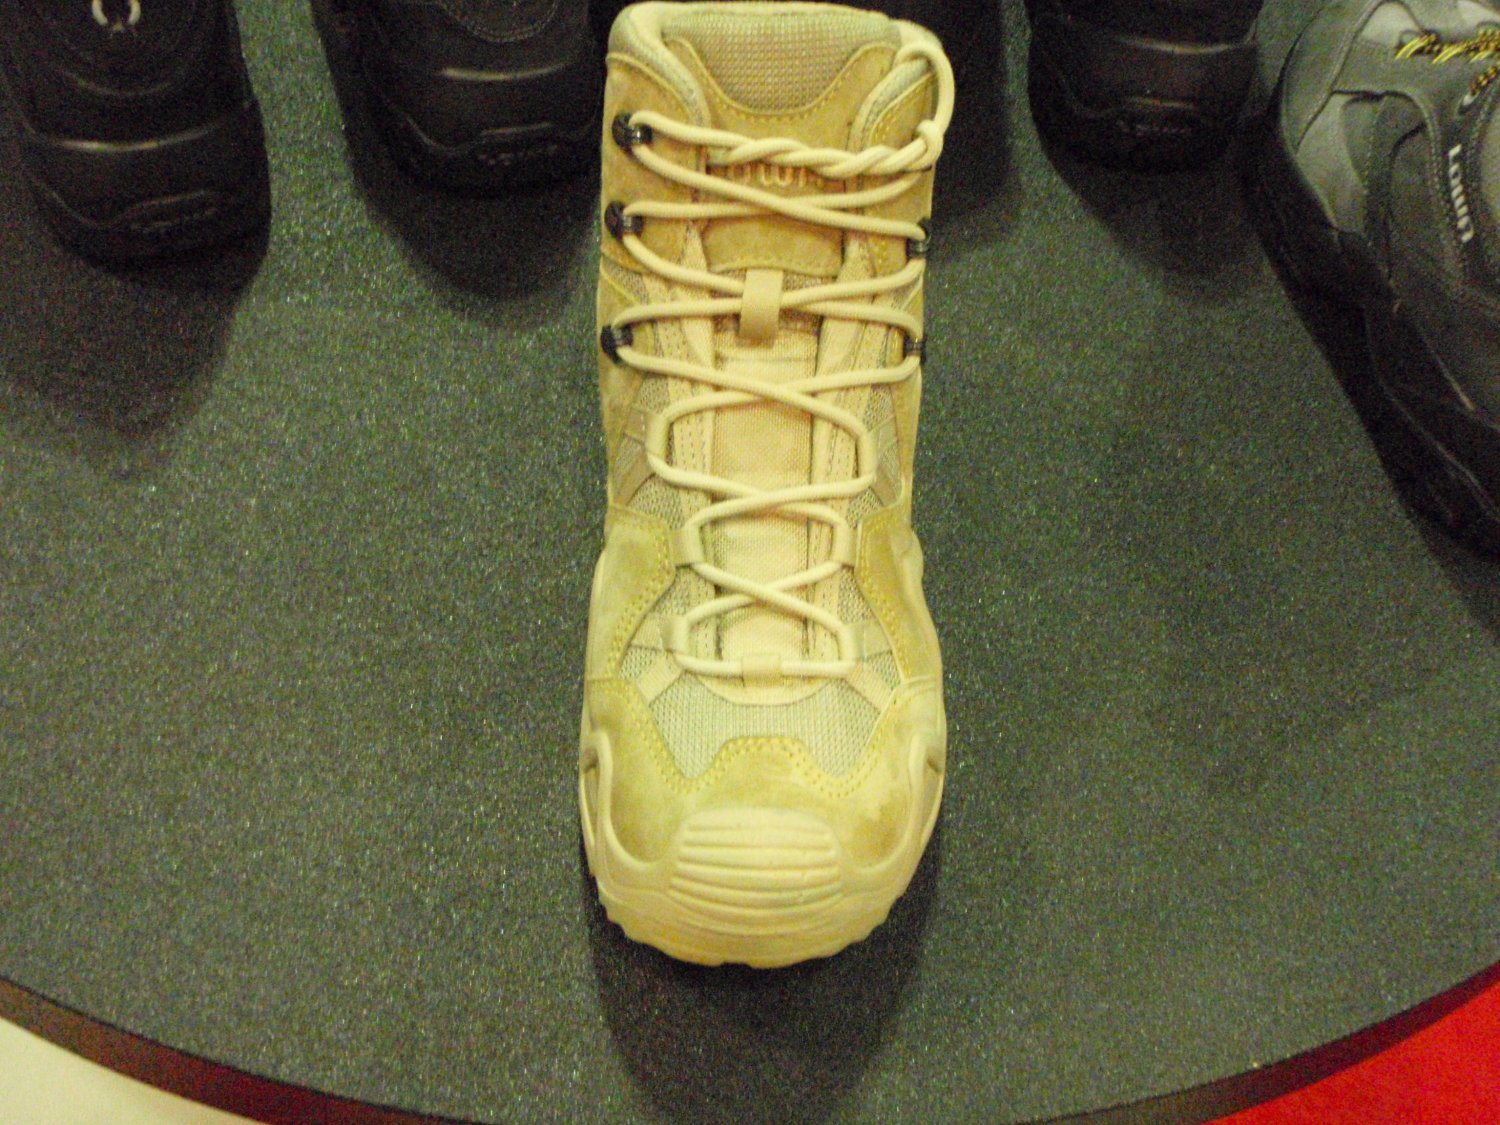 Lowa Tactical Boot 3 <!  :en  >LOWA Tactical Boots Introduces LOWA Desert Mid Tactical Boot at SHOT Show 2009<!  :  >